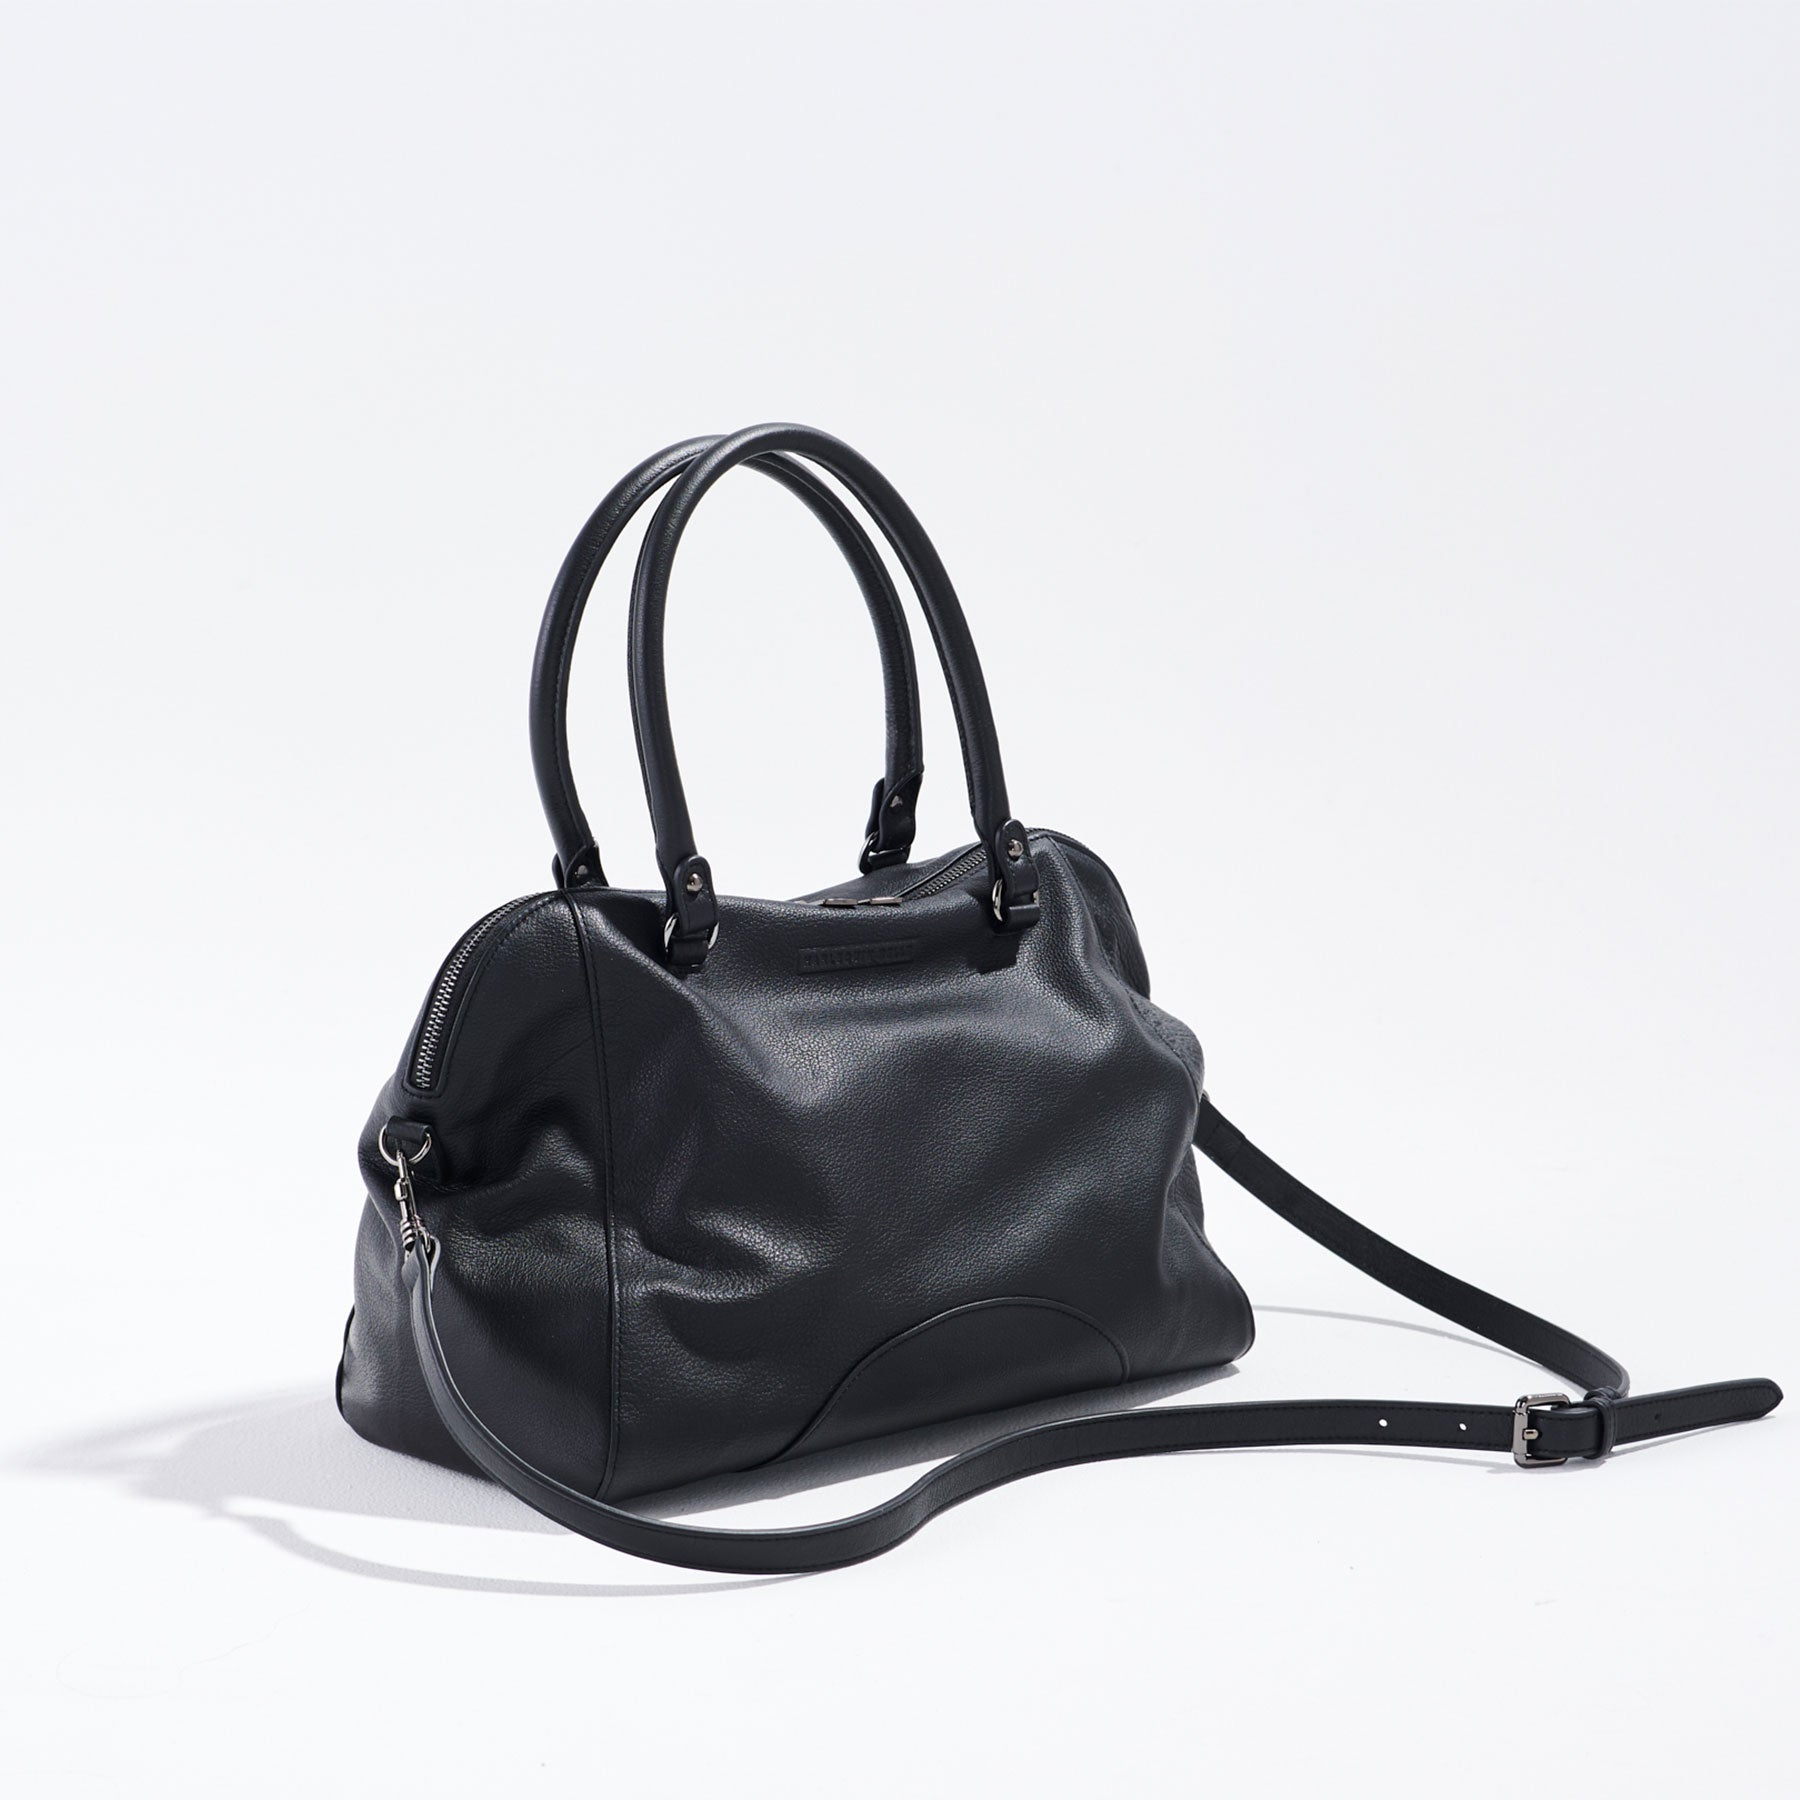 front view of large black leather handbag